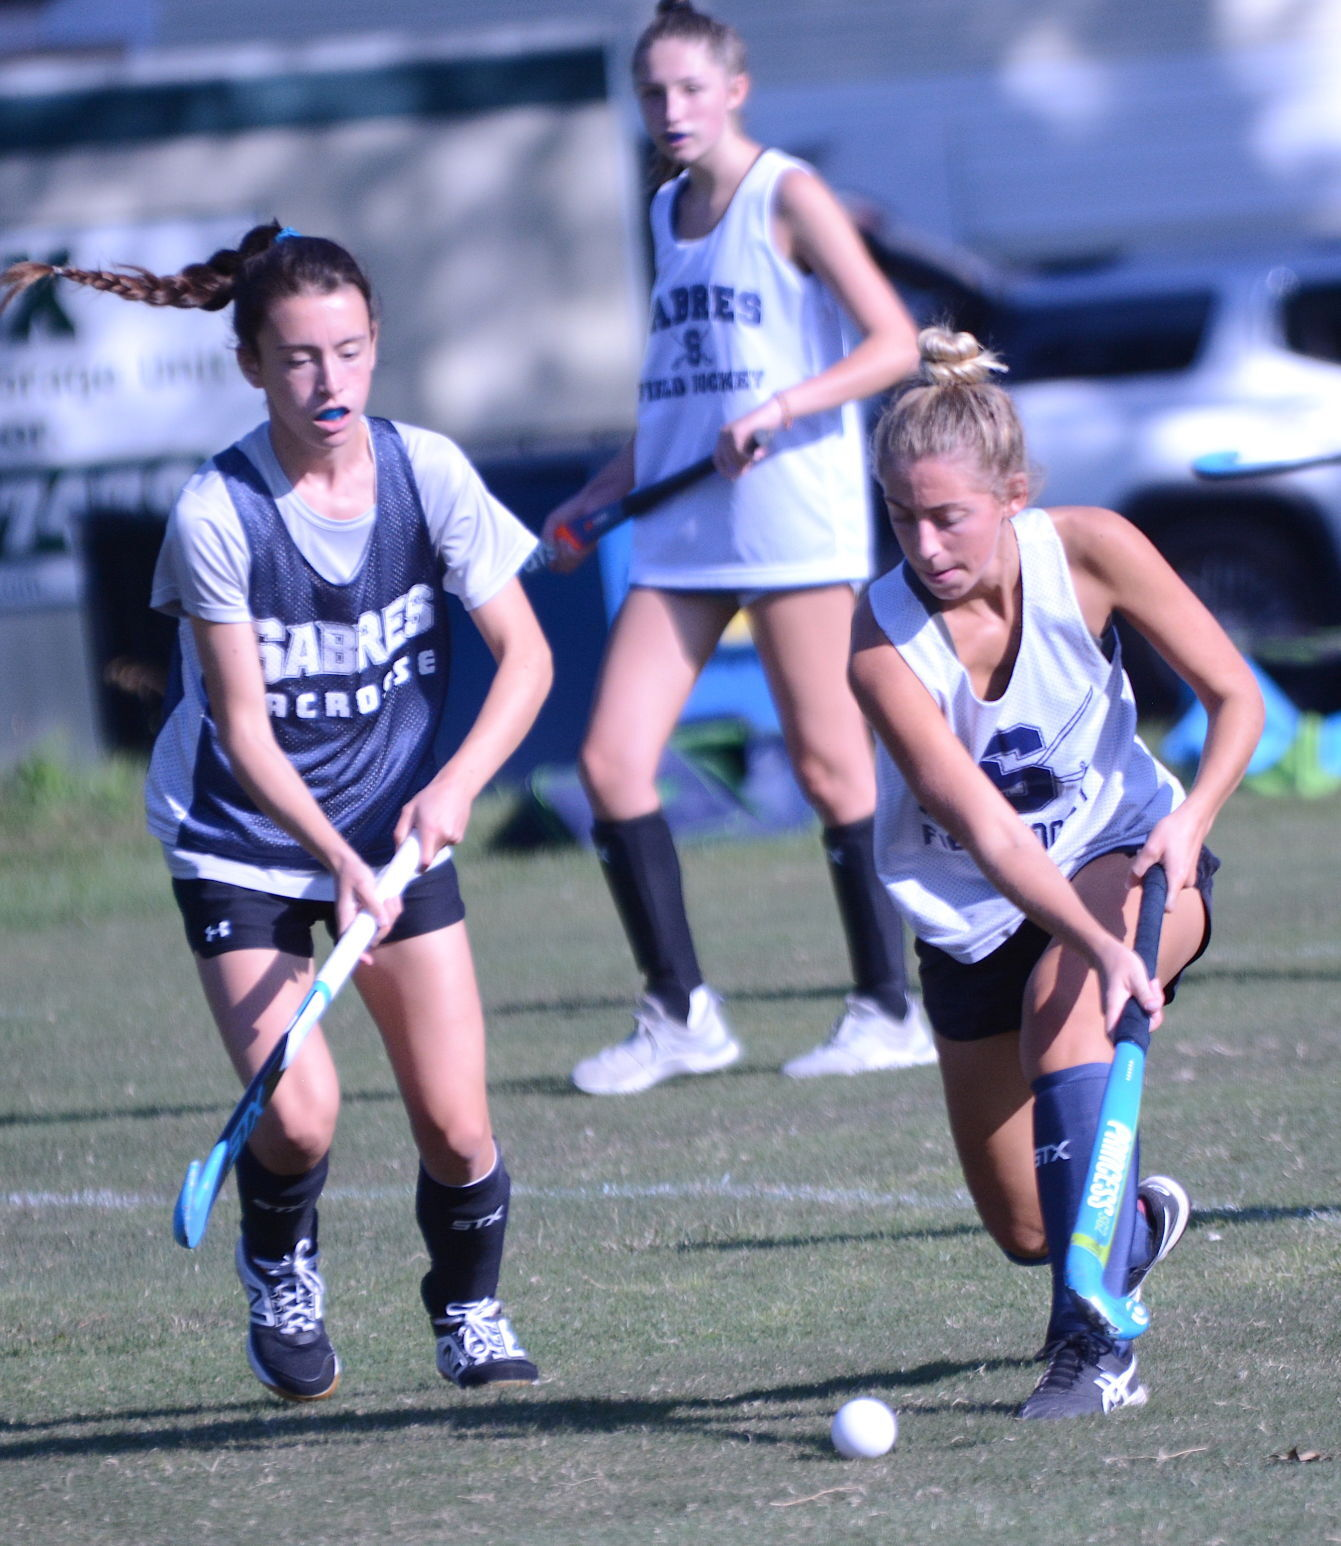 SSPP FIELD HOCKEY